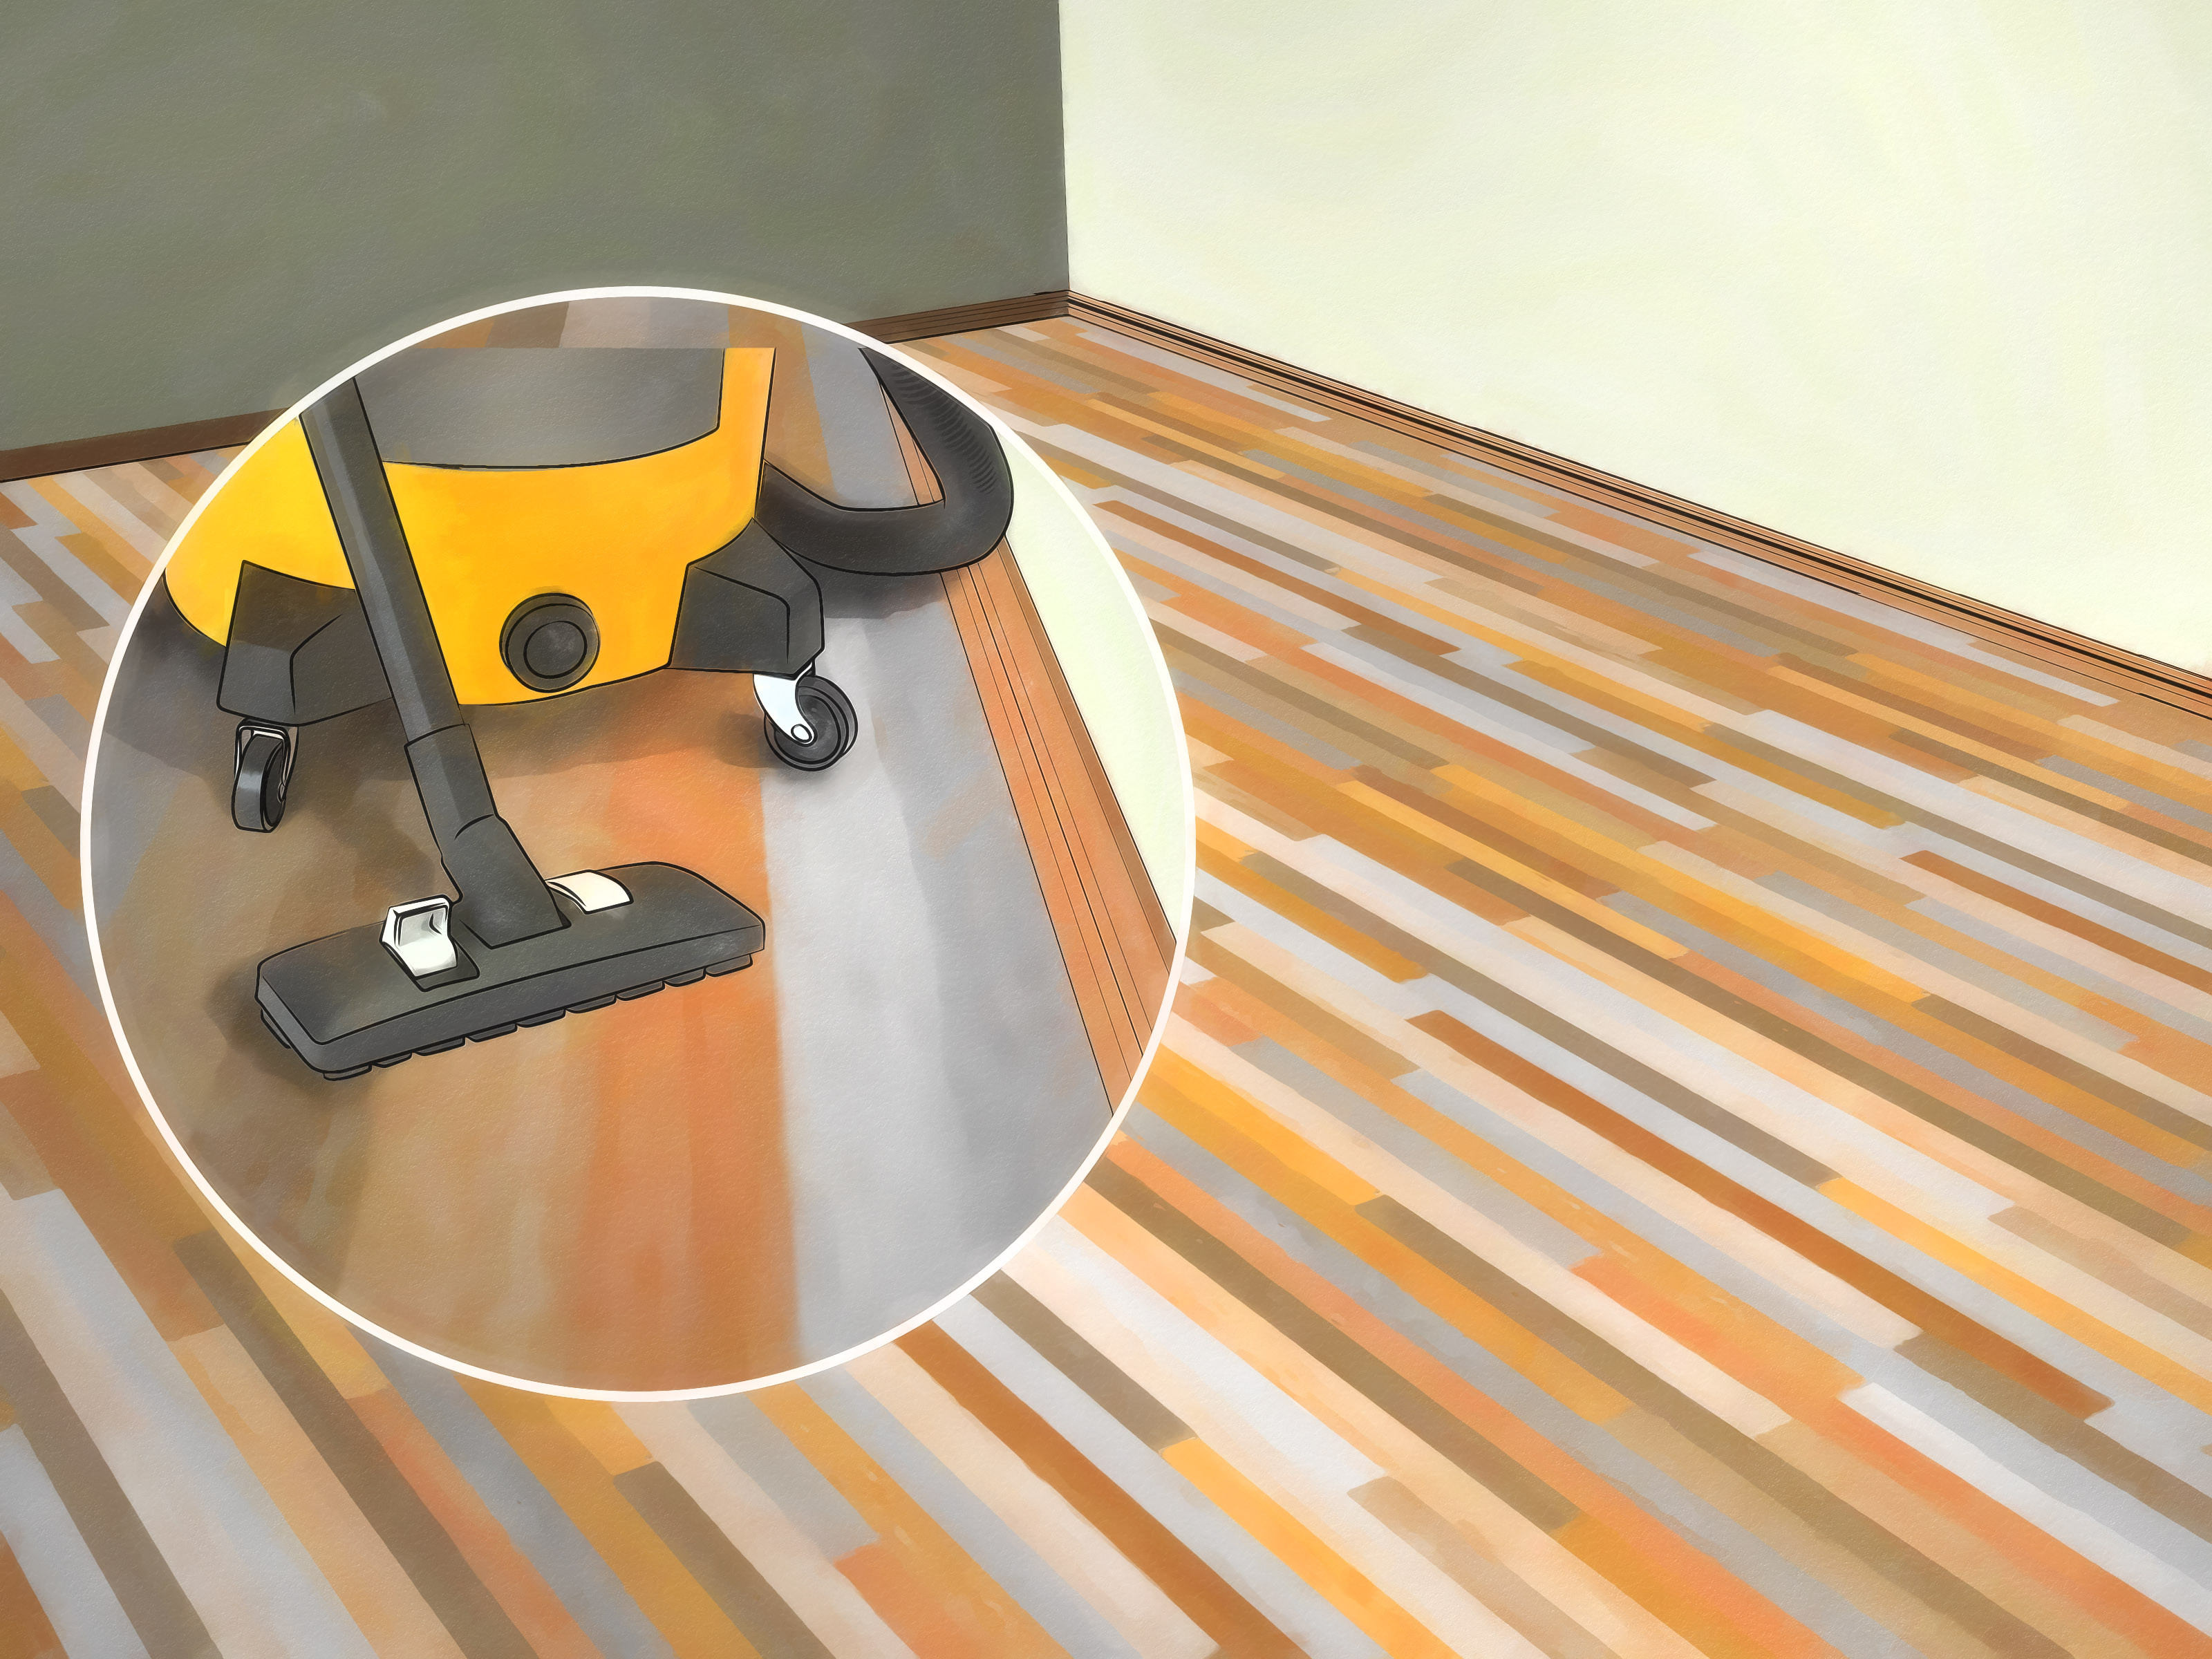 refinishing hardwood floors how long does it take of how to sand hardwood floors with pictures wikihow throughout sand hardwood floors step 22